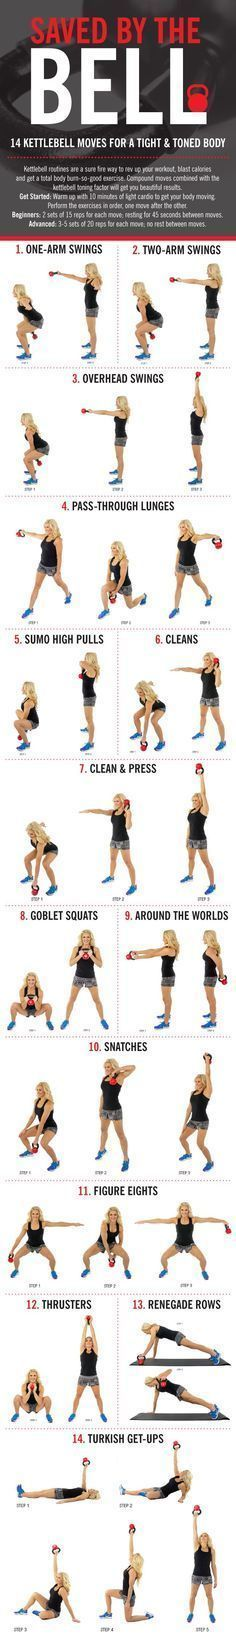 Free Workouts: Check out this kettlebell routine before your next gym session for a full body workout that torches calories! CLICK to see full workout. Comment after you try it and let us know what you think!